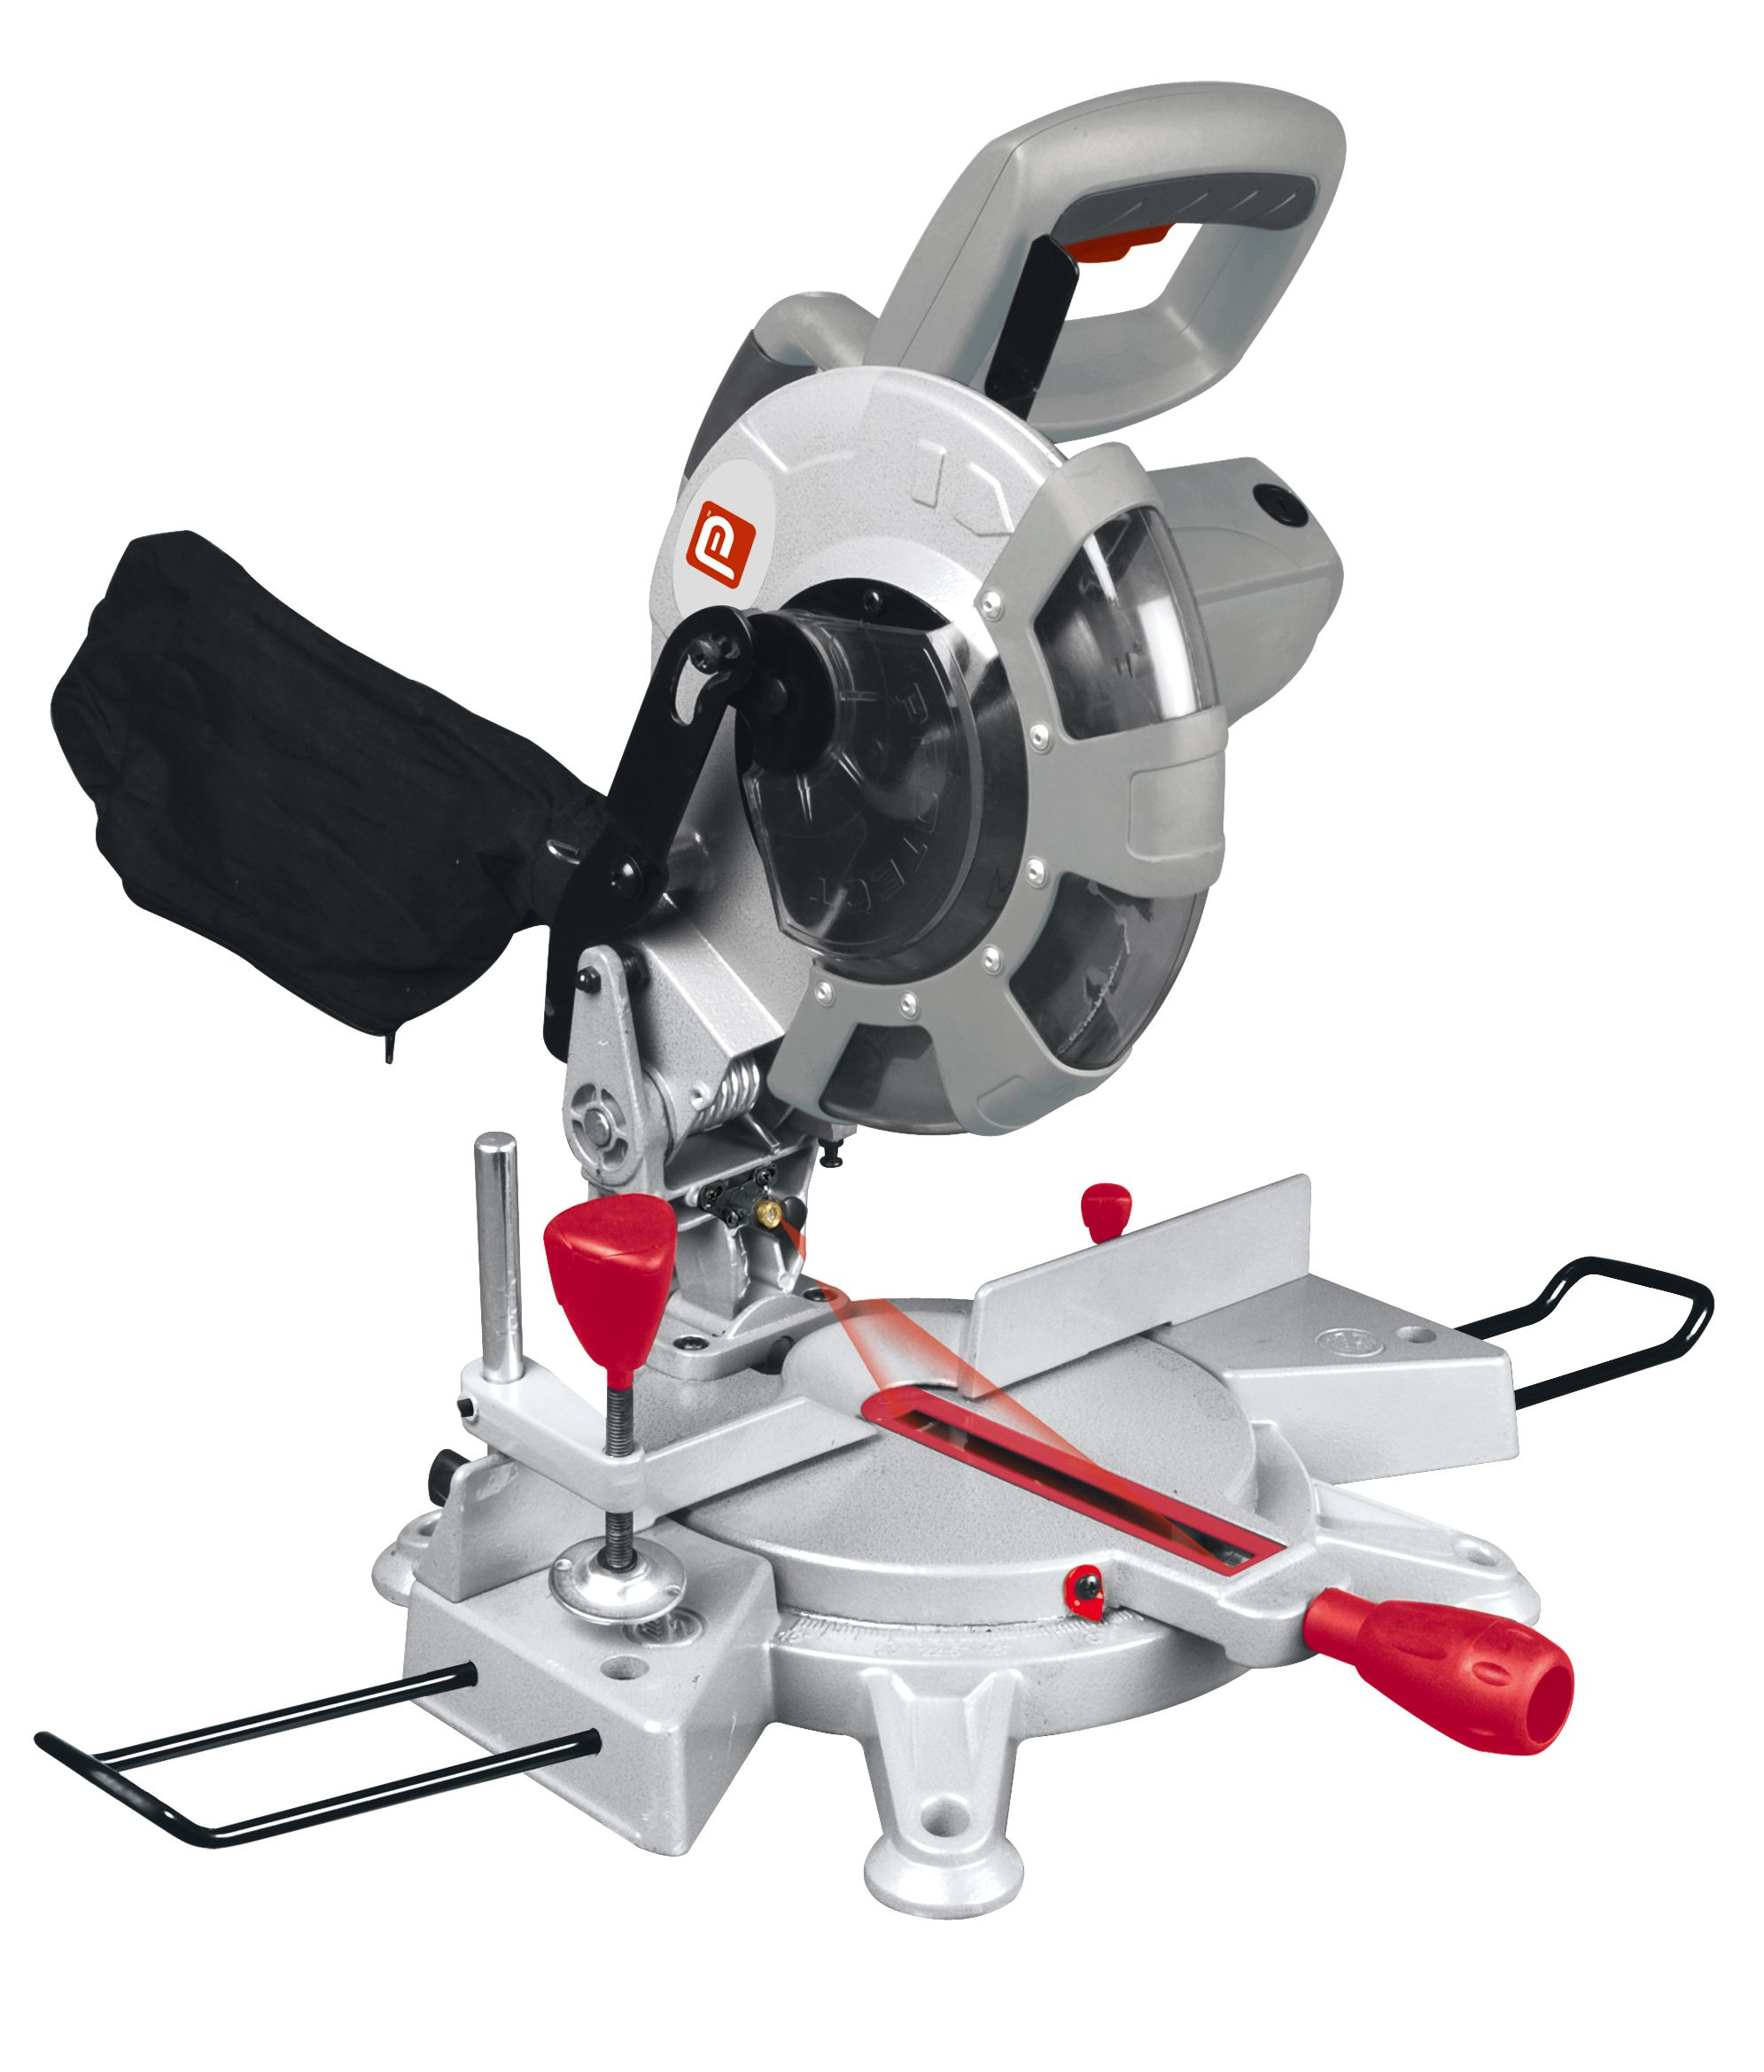 Performance Power 1700w 230v 210mm Compound Mitre Saw Bms210m Departments Diy At B Q